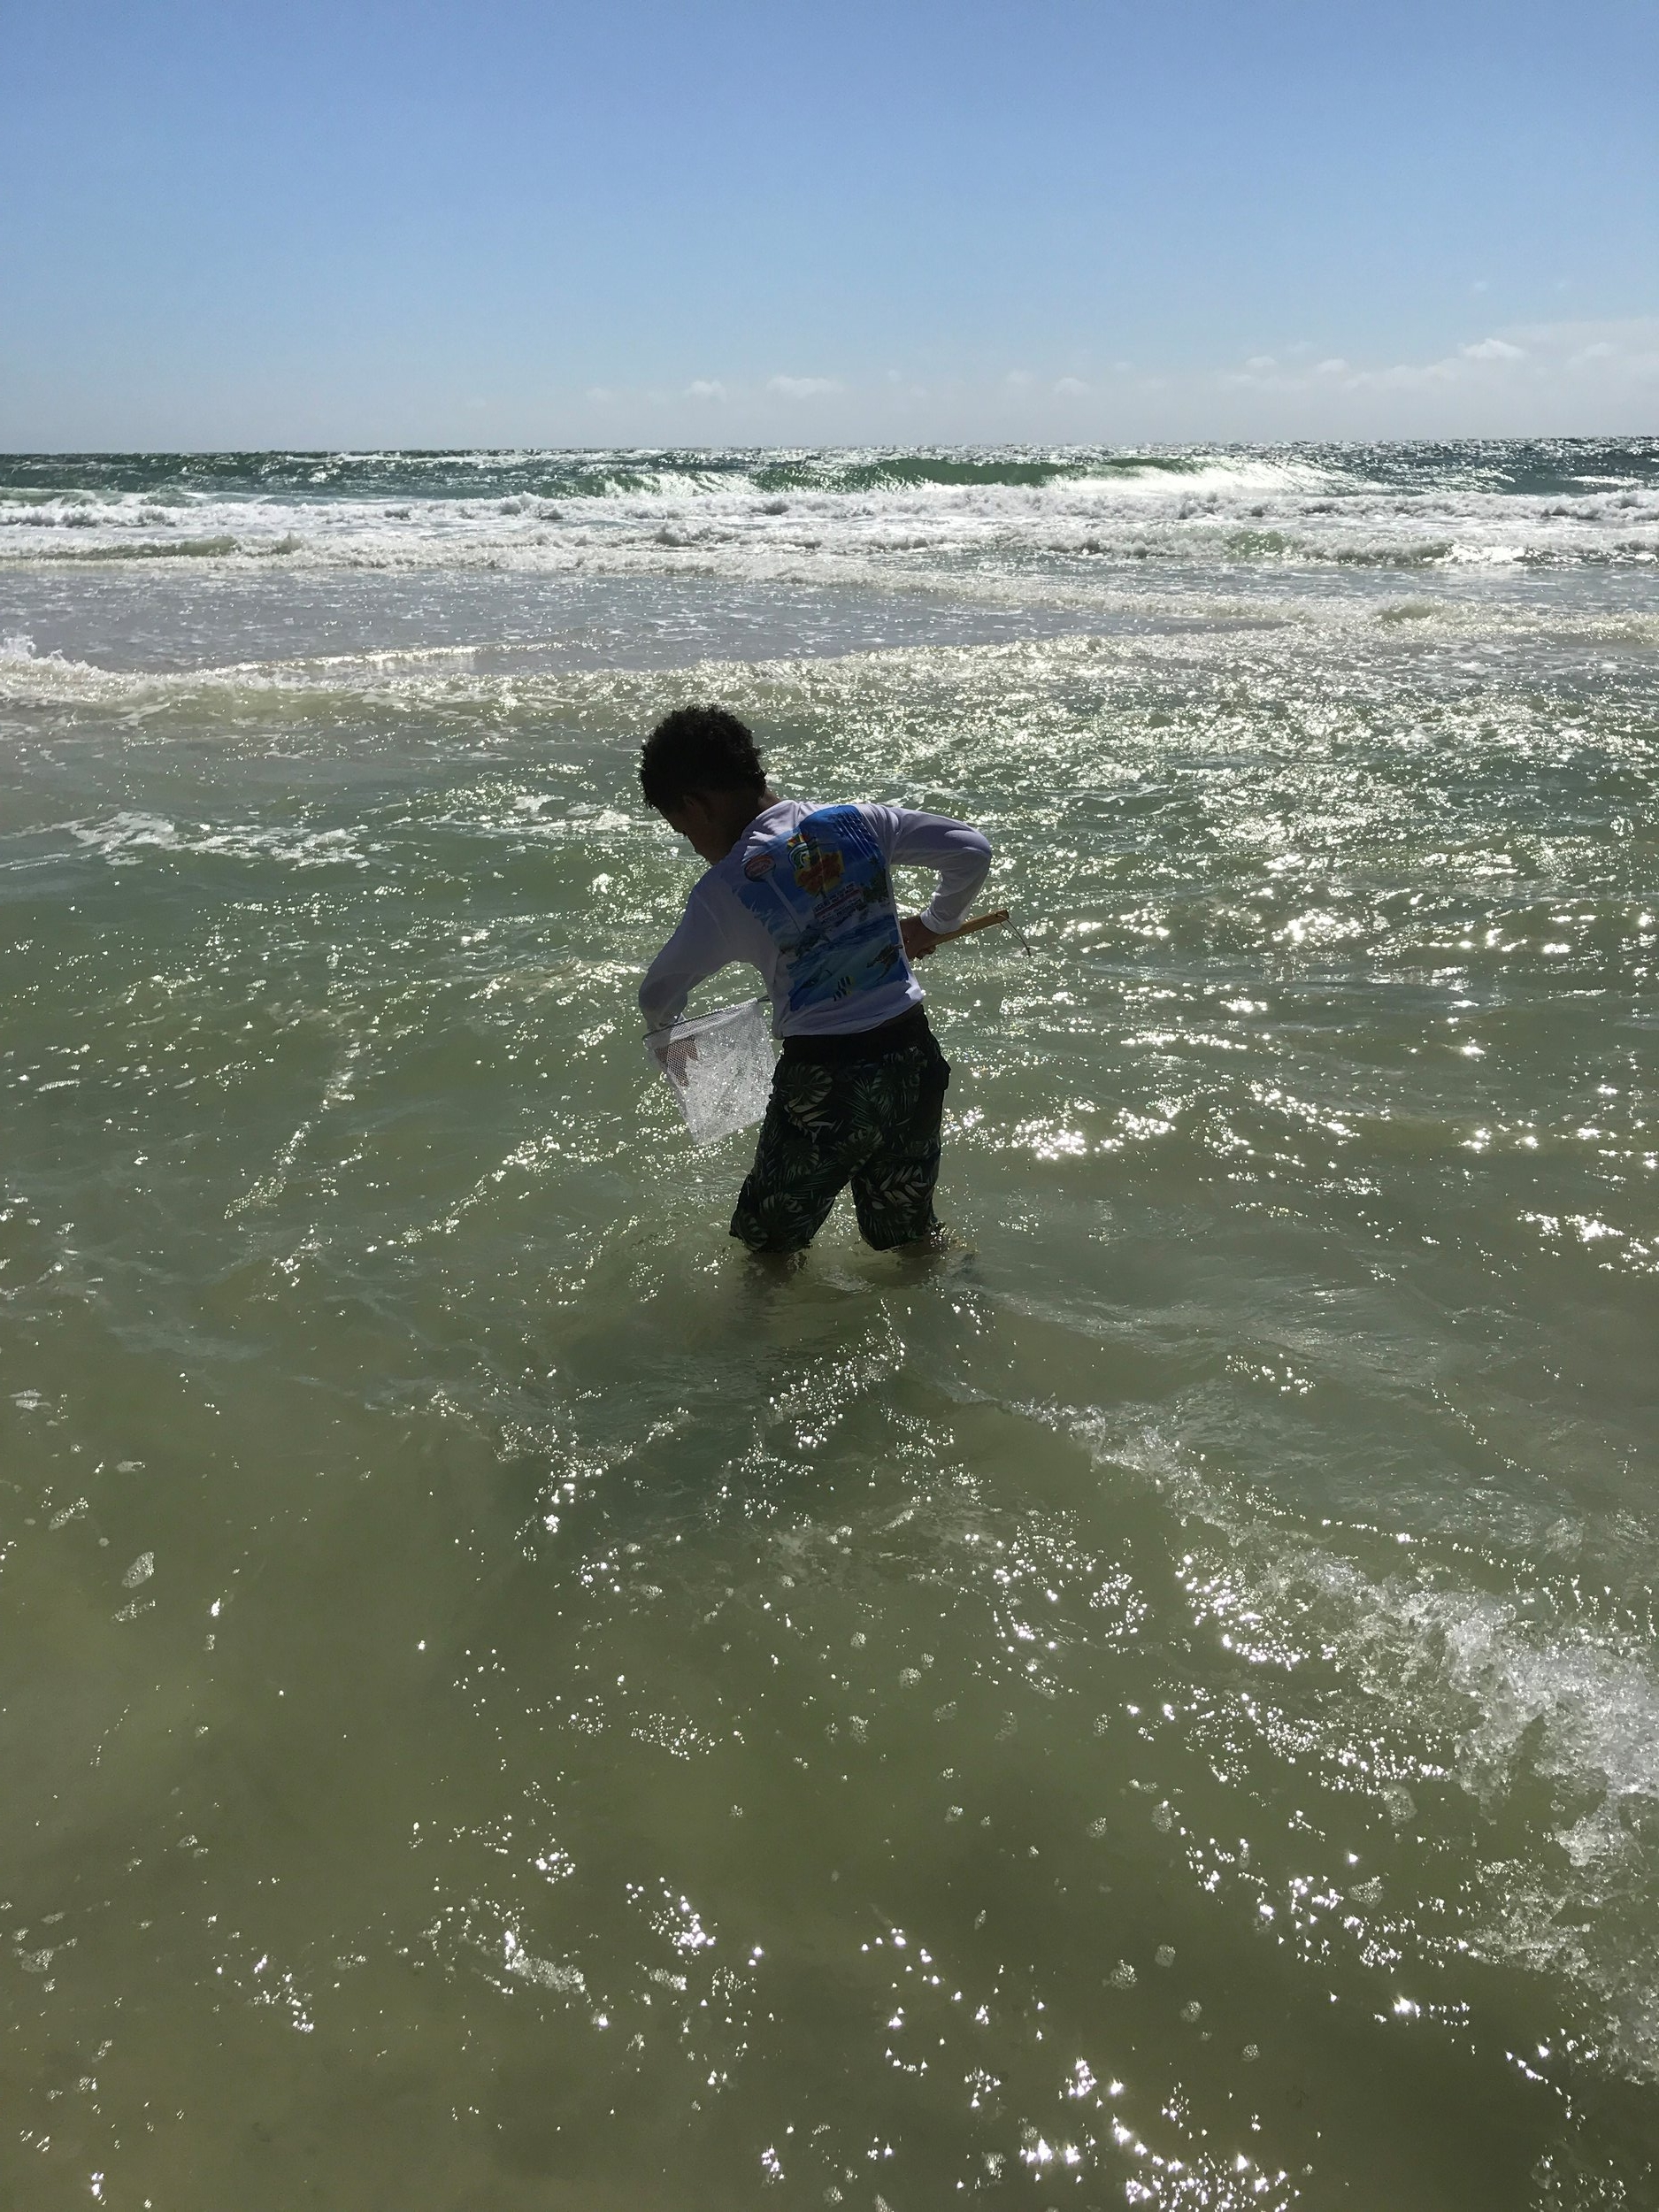 You can find nets at most shops on the beach for really inexpensive. I'm talking $5 or less. My son had the best time catching (and releasing, don't come after me PETA) little fish on the beach!